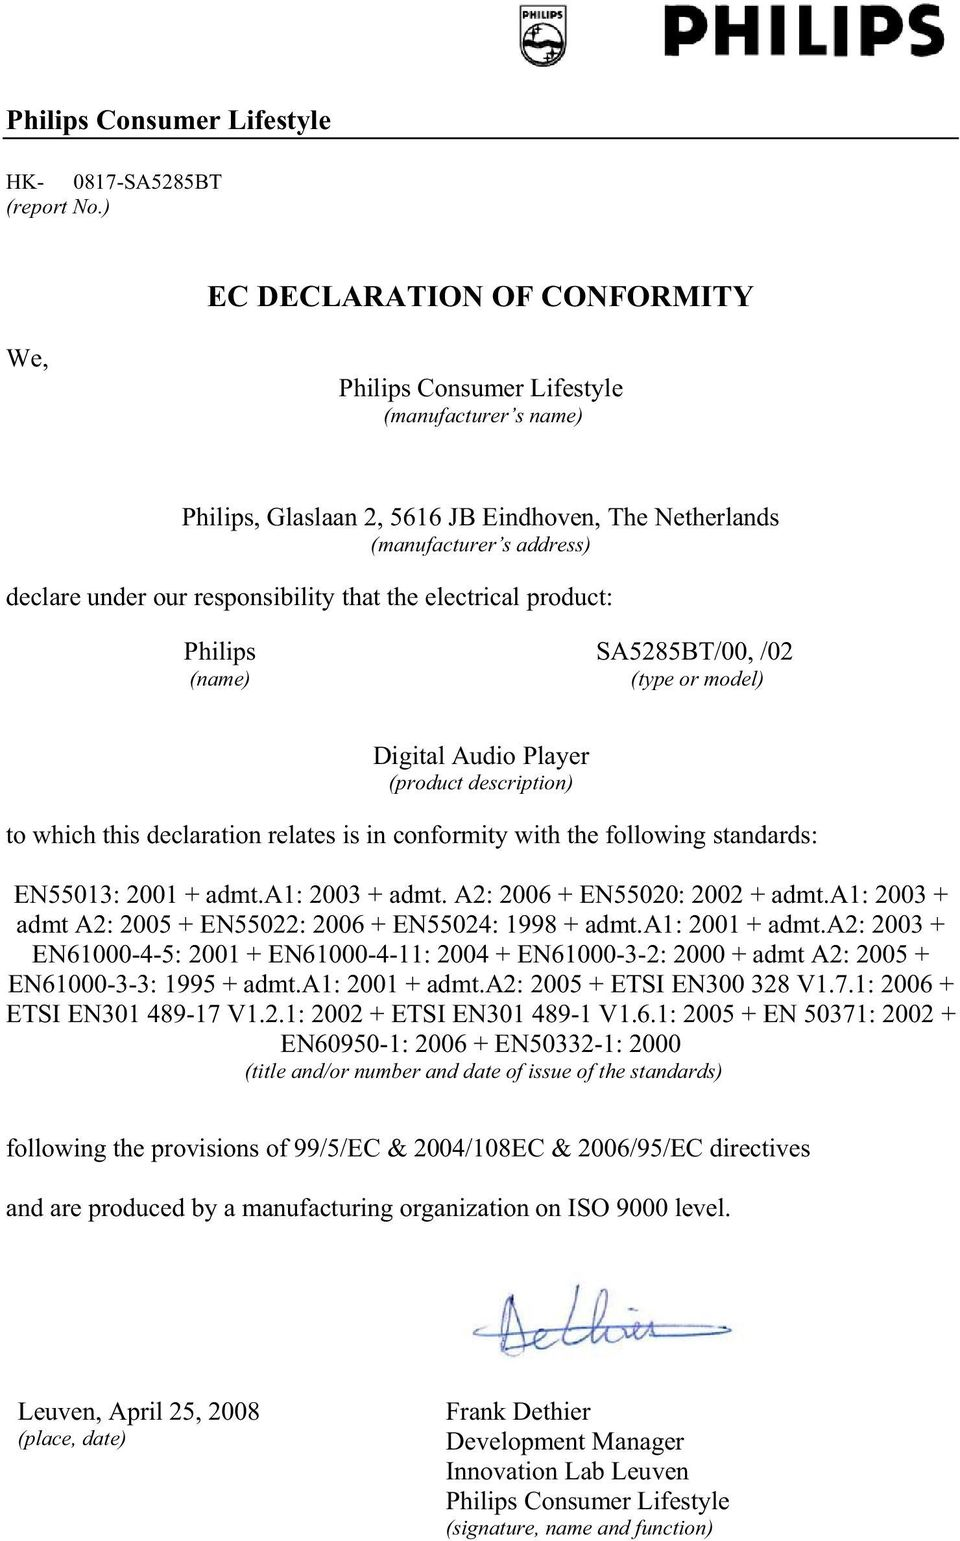 that the electrical product: Philips SA5285BT/00, /02 (name) (type or model) Digital Audio Player (product description) to which this declaration relates is in conformity with the following